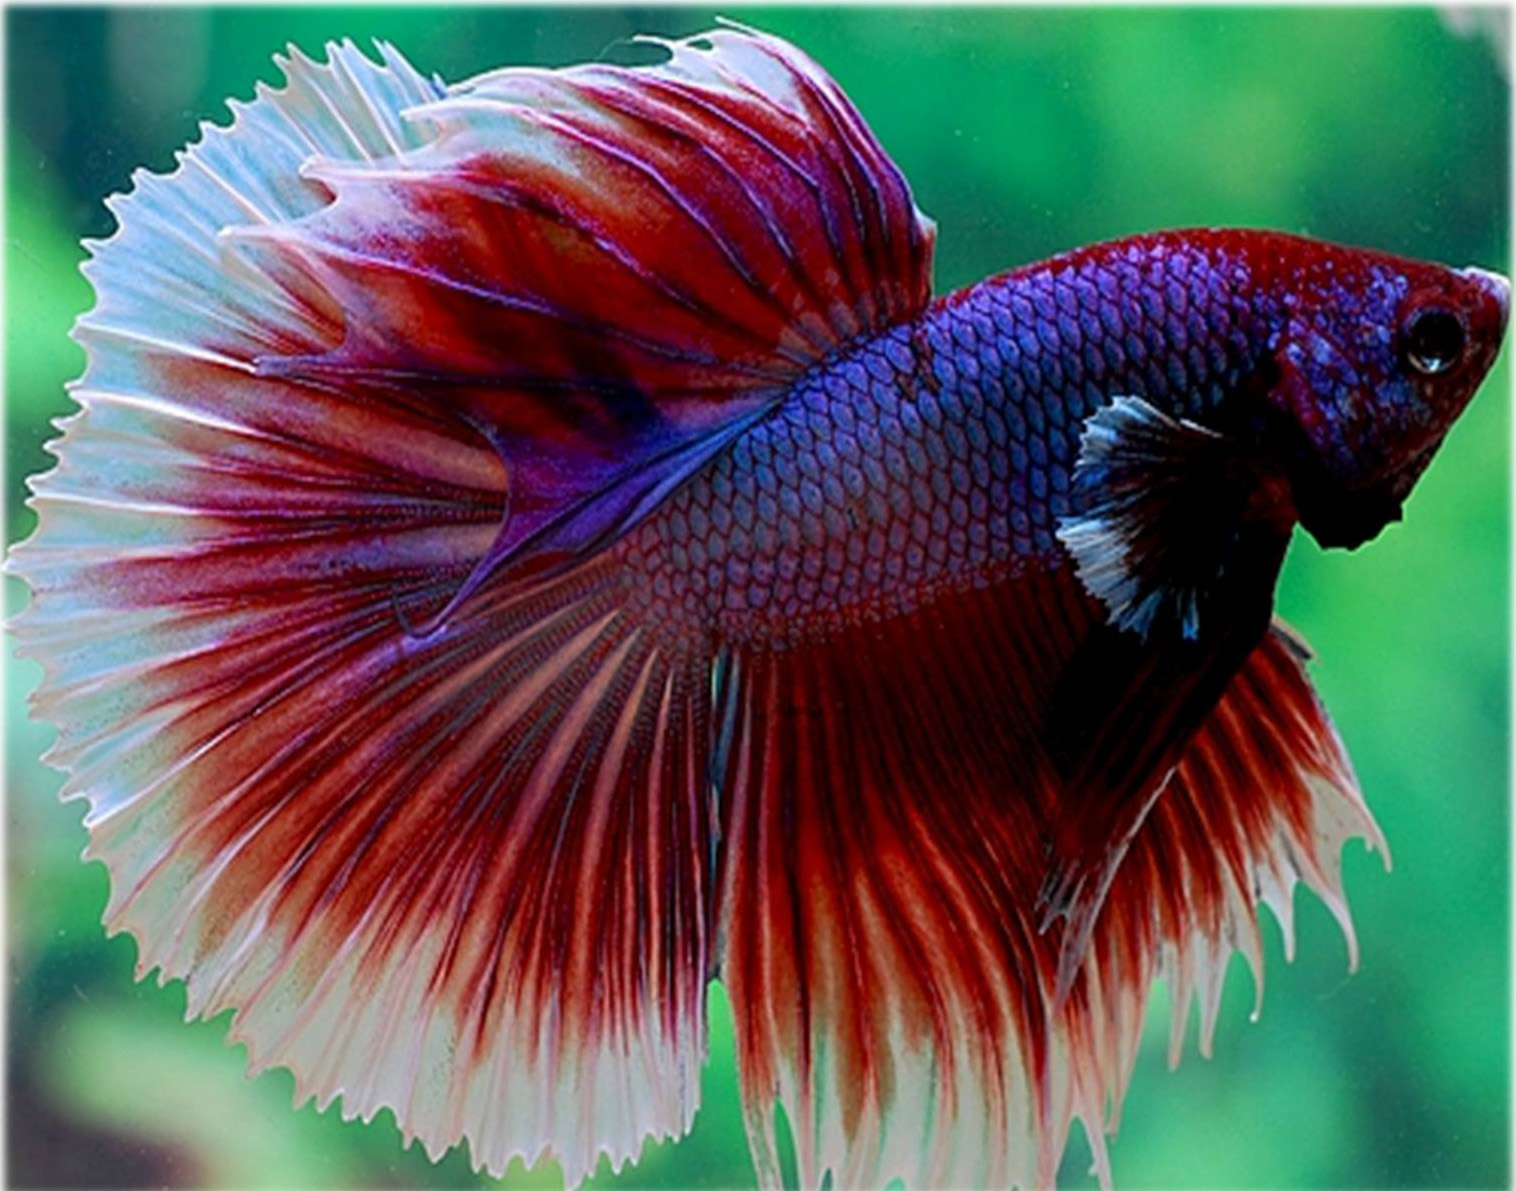 How to choose a healthy betta fish petshoptop for Healthy betta fish